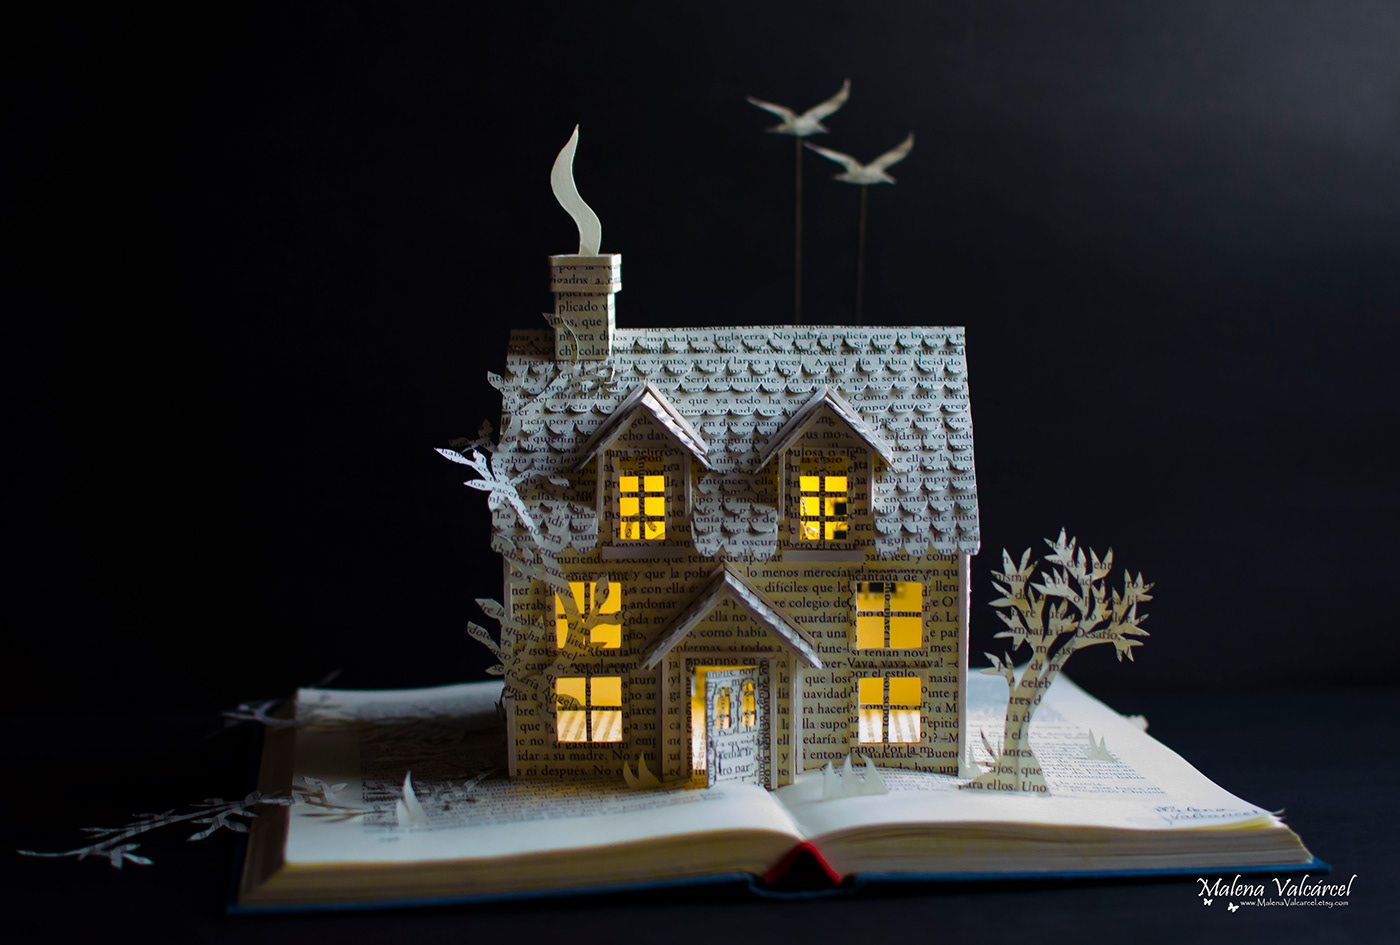 paper sculpture house by malena valcarcel